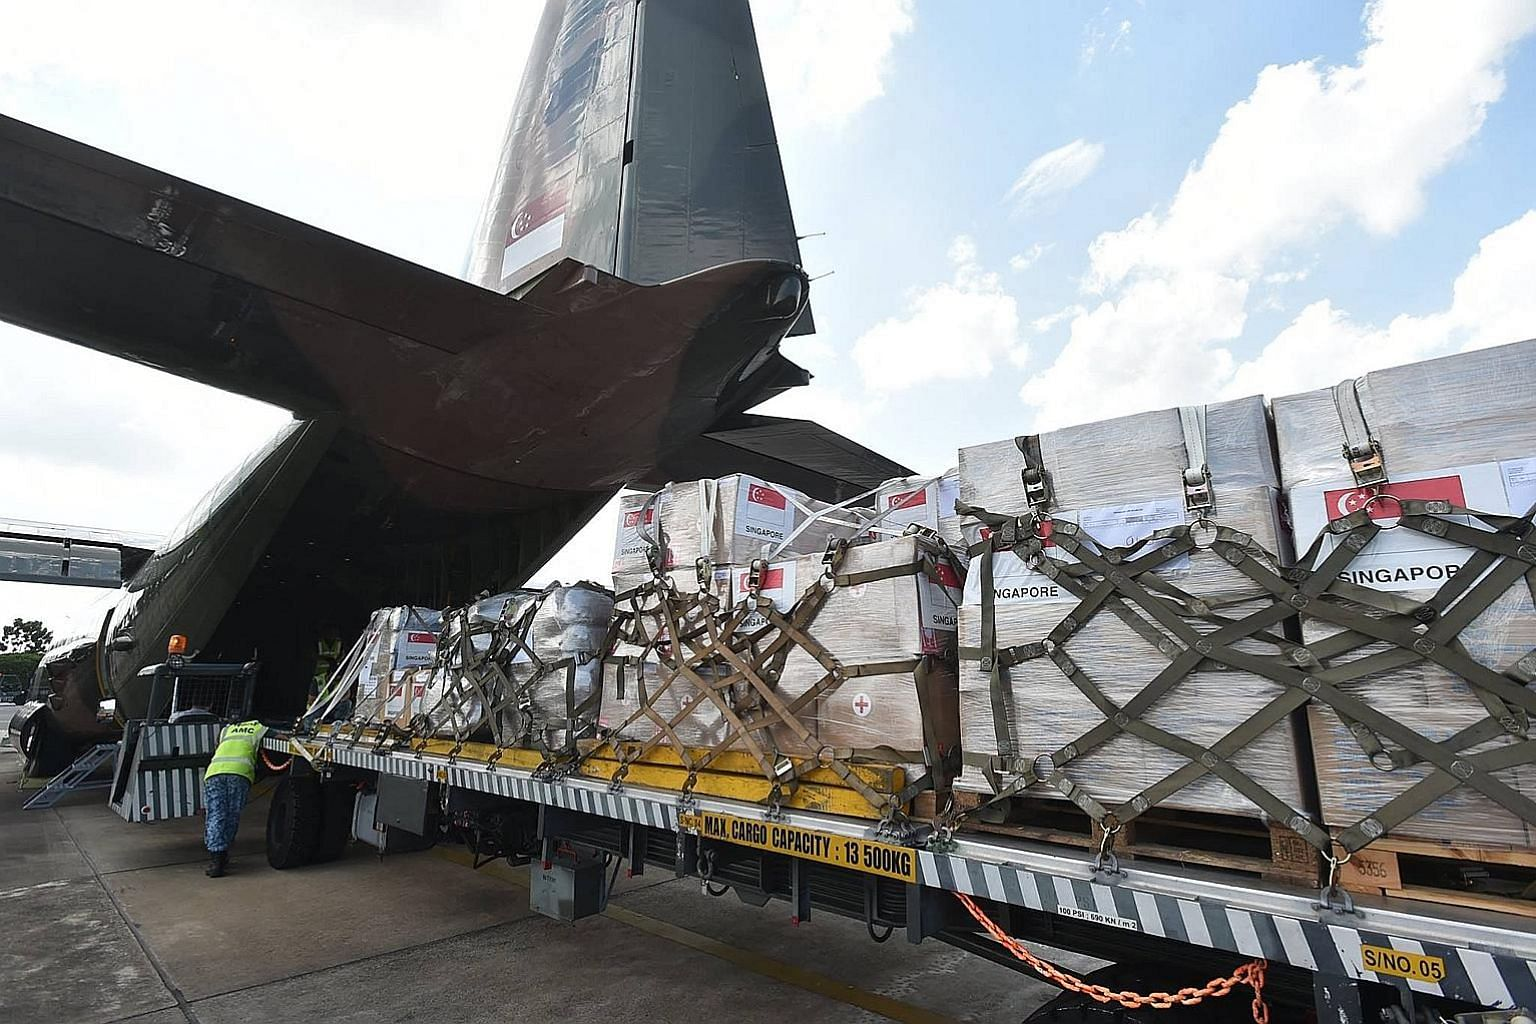 The humanitarian supplies donated by the SAF and Singapore Red Cross for the civilians affected by conflict in Marawi will be delivered by a Republic of Singapore Air Force C-130 transport aircraft.